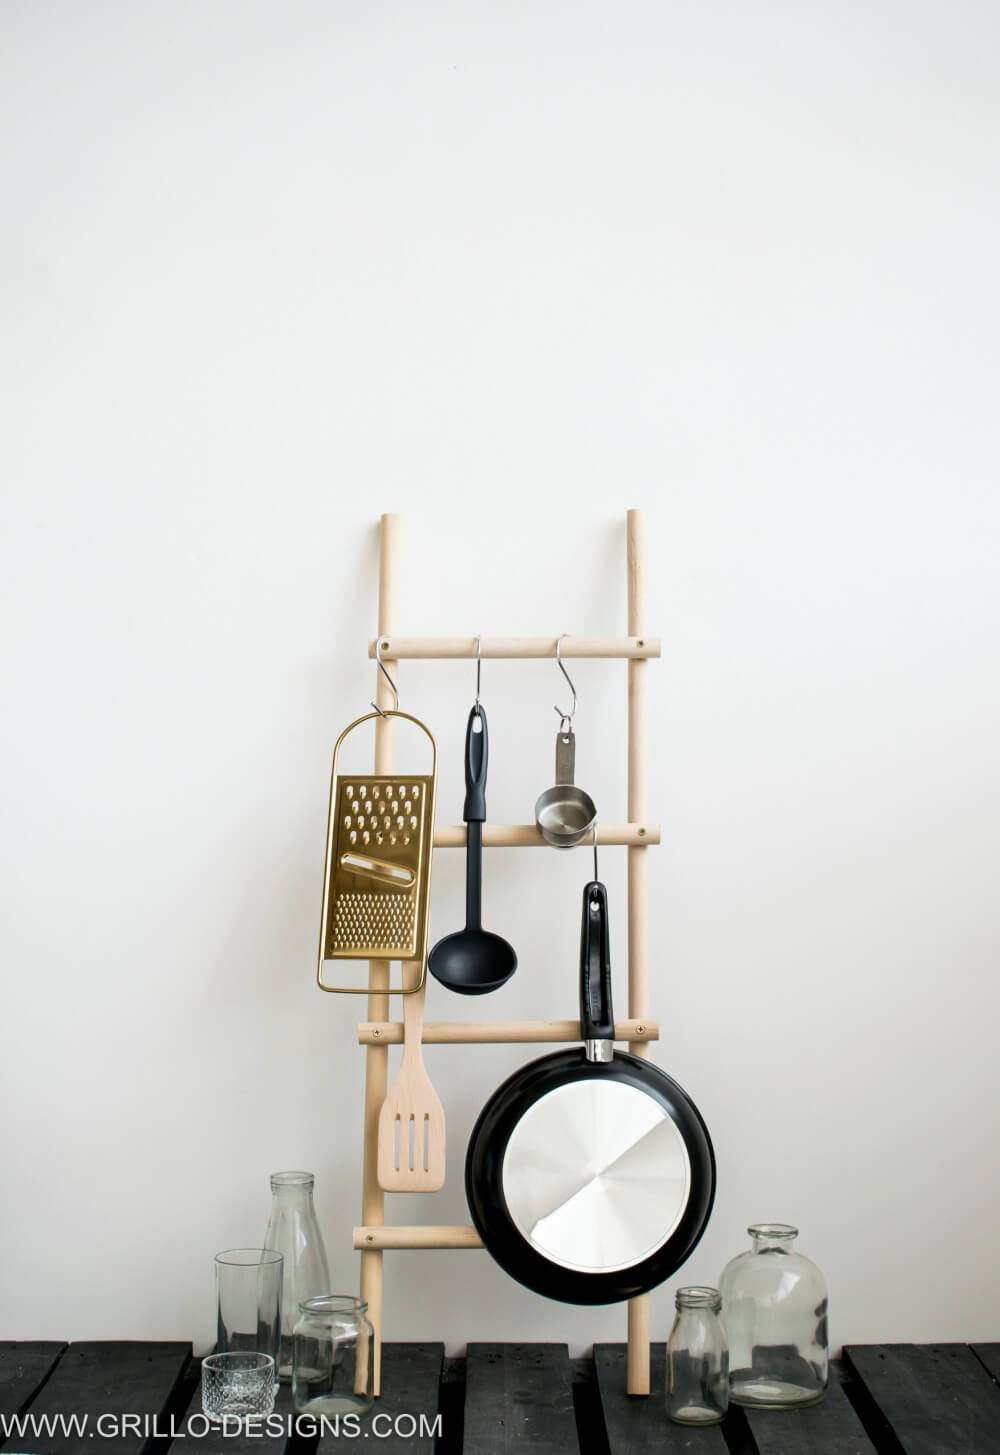 DIY UTENSIL RACK USING WOODEN DOWELS / GRILLO DESIGNS